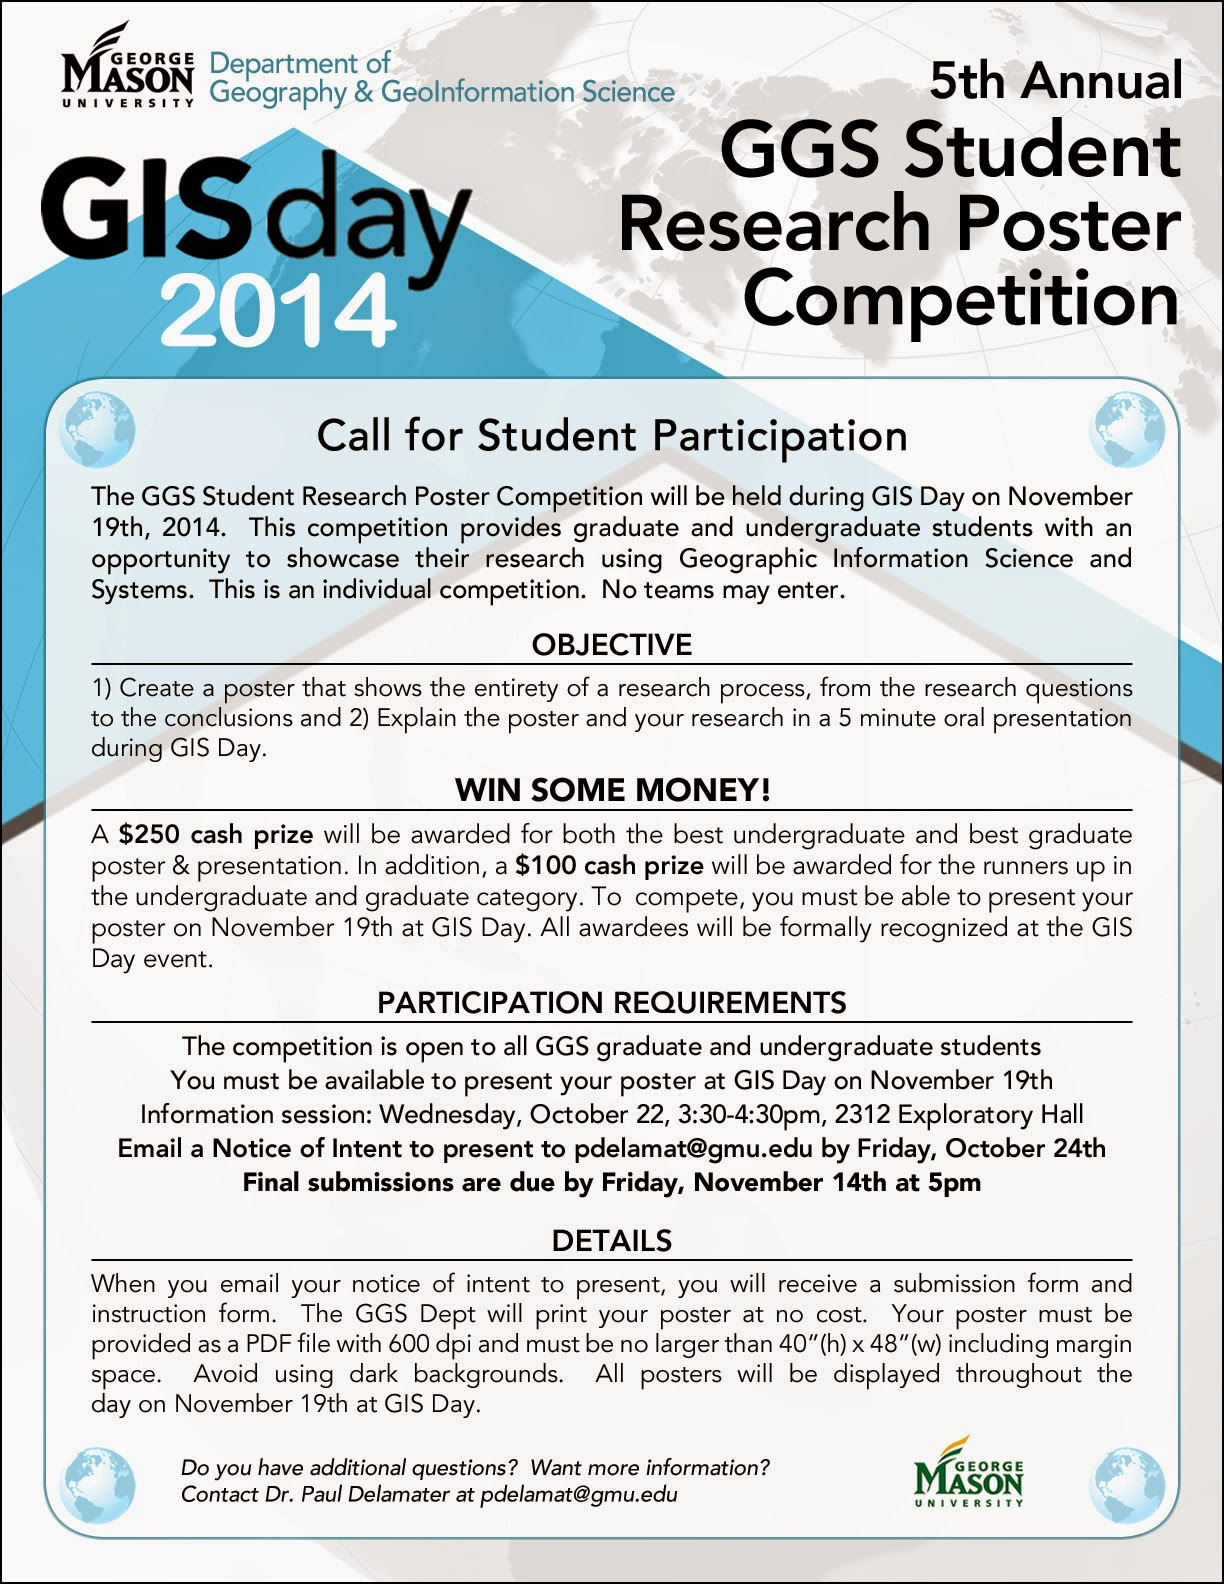 the student poster competition showcases the results of your own research